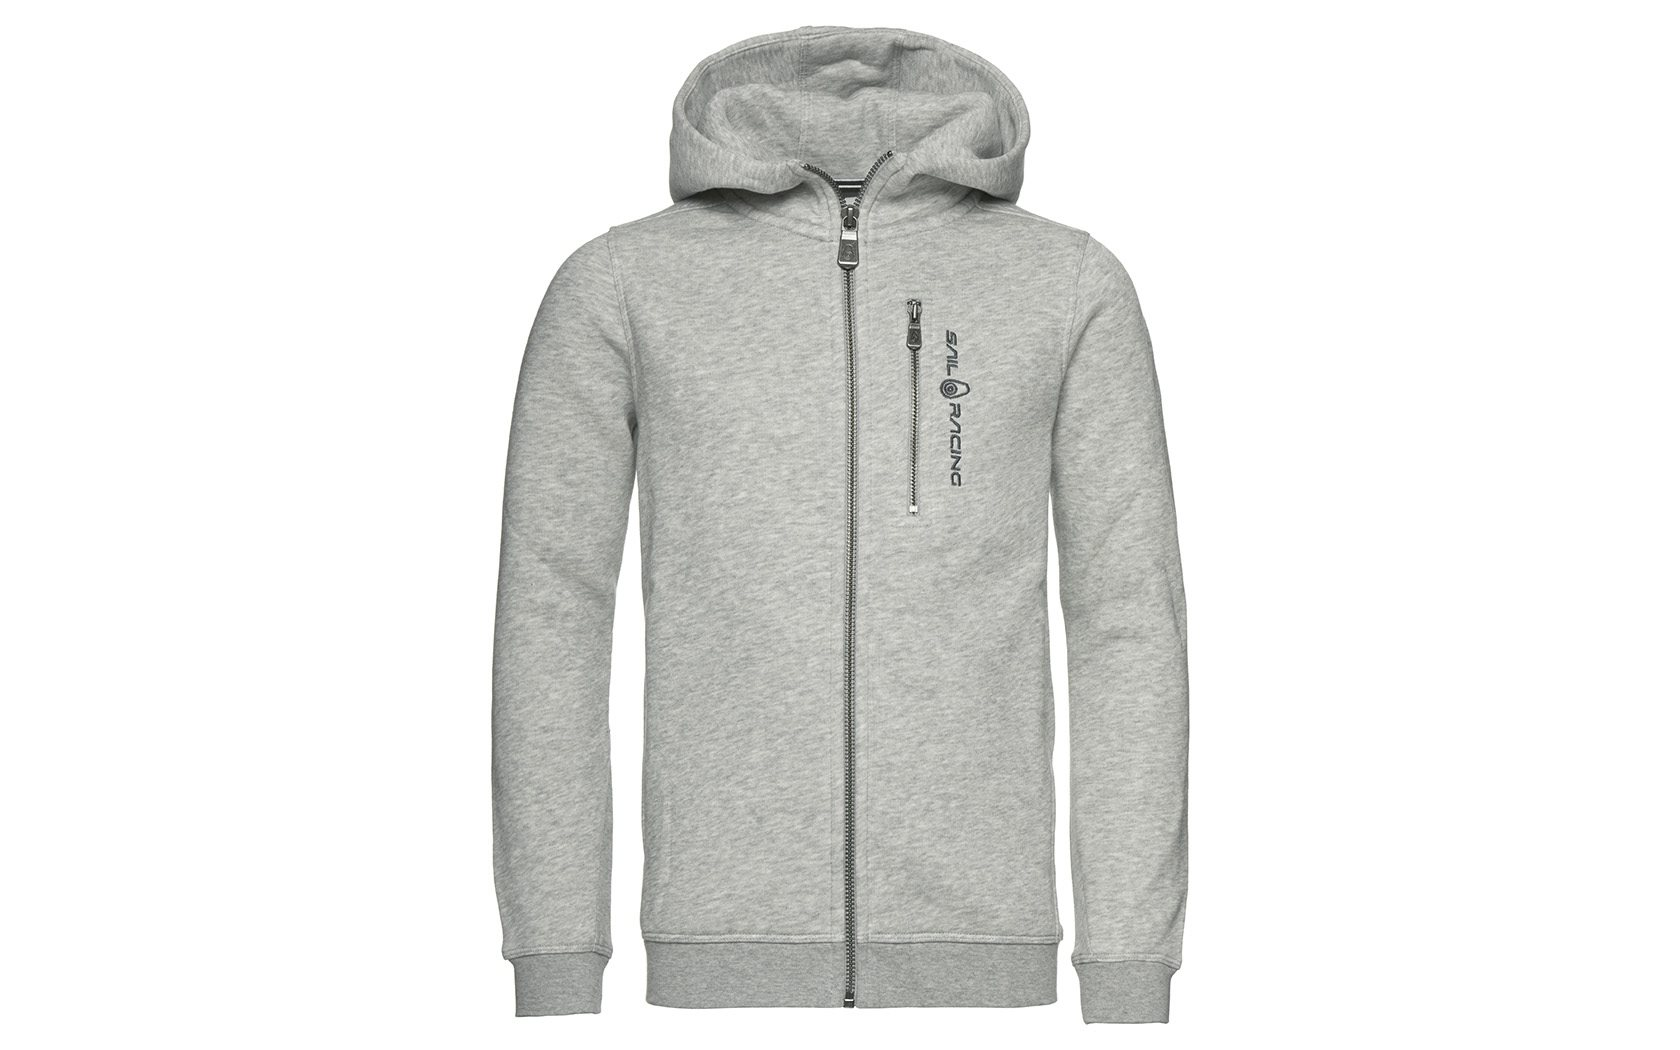 JR BOWMAN ZIP HOOD